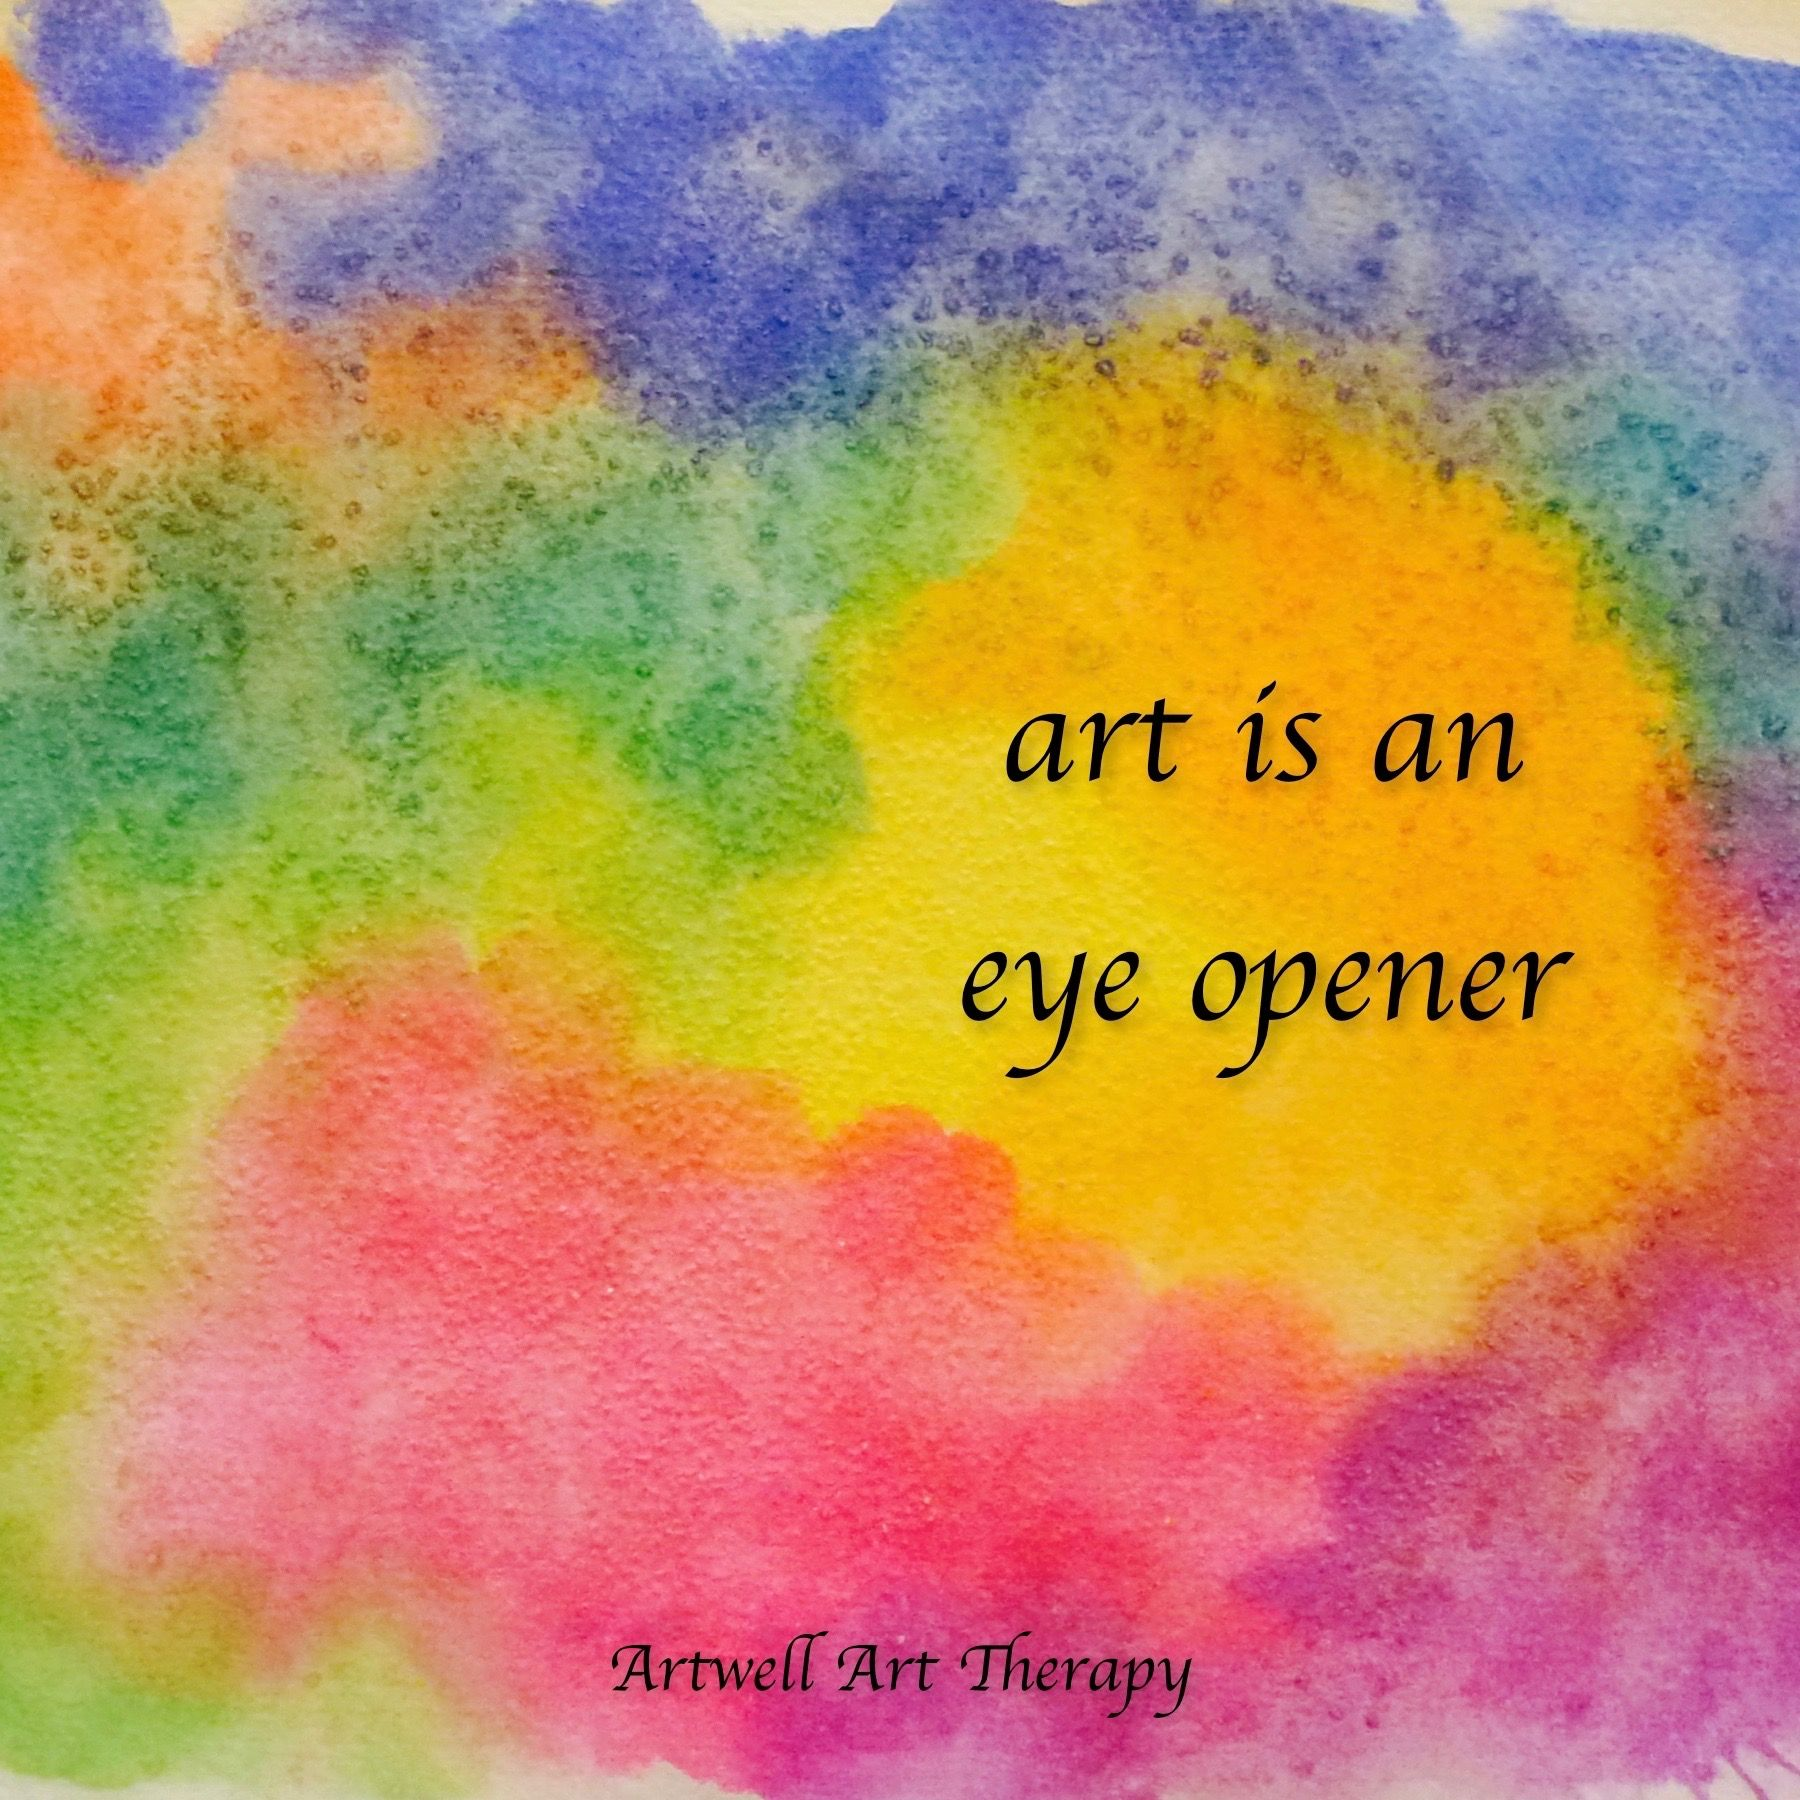 Pin by Anna on Art Quotes & Artists & Studios & Art